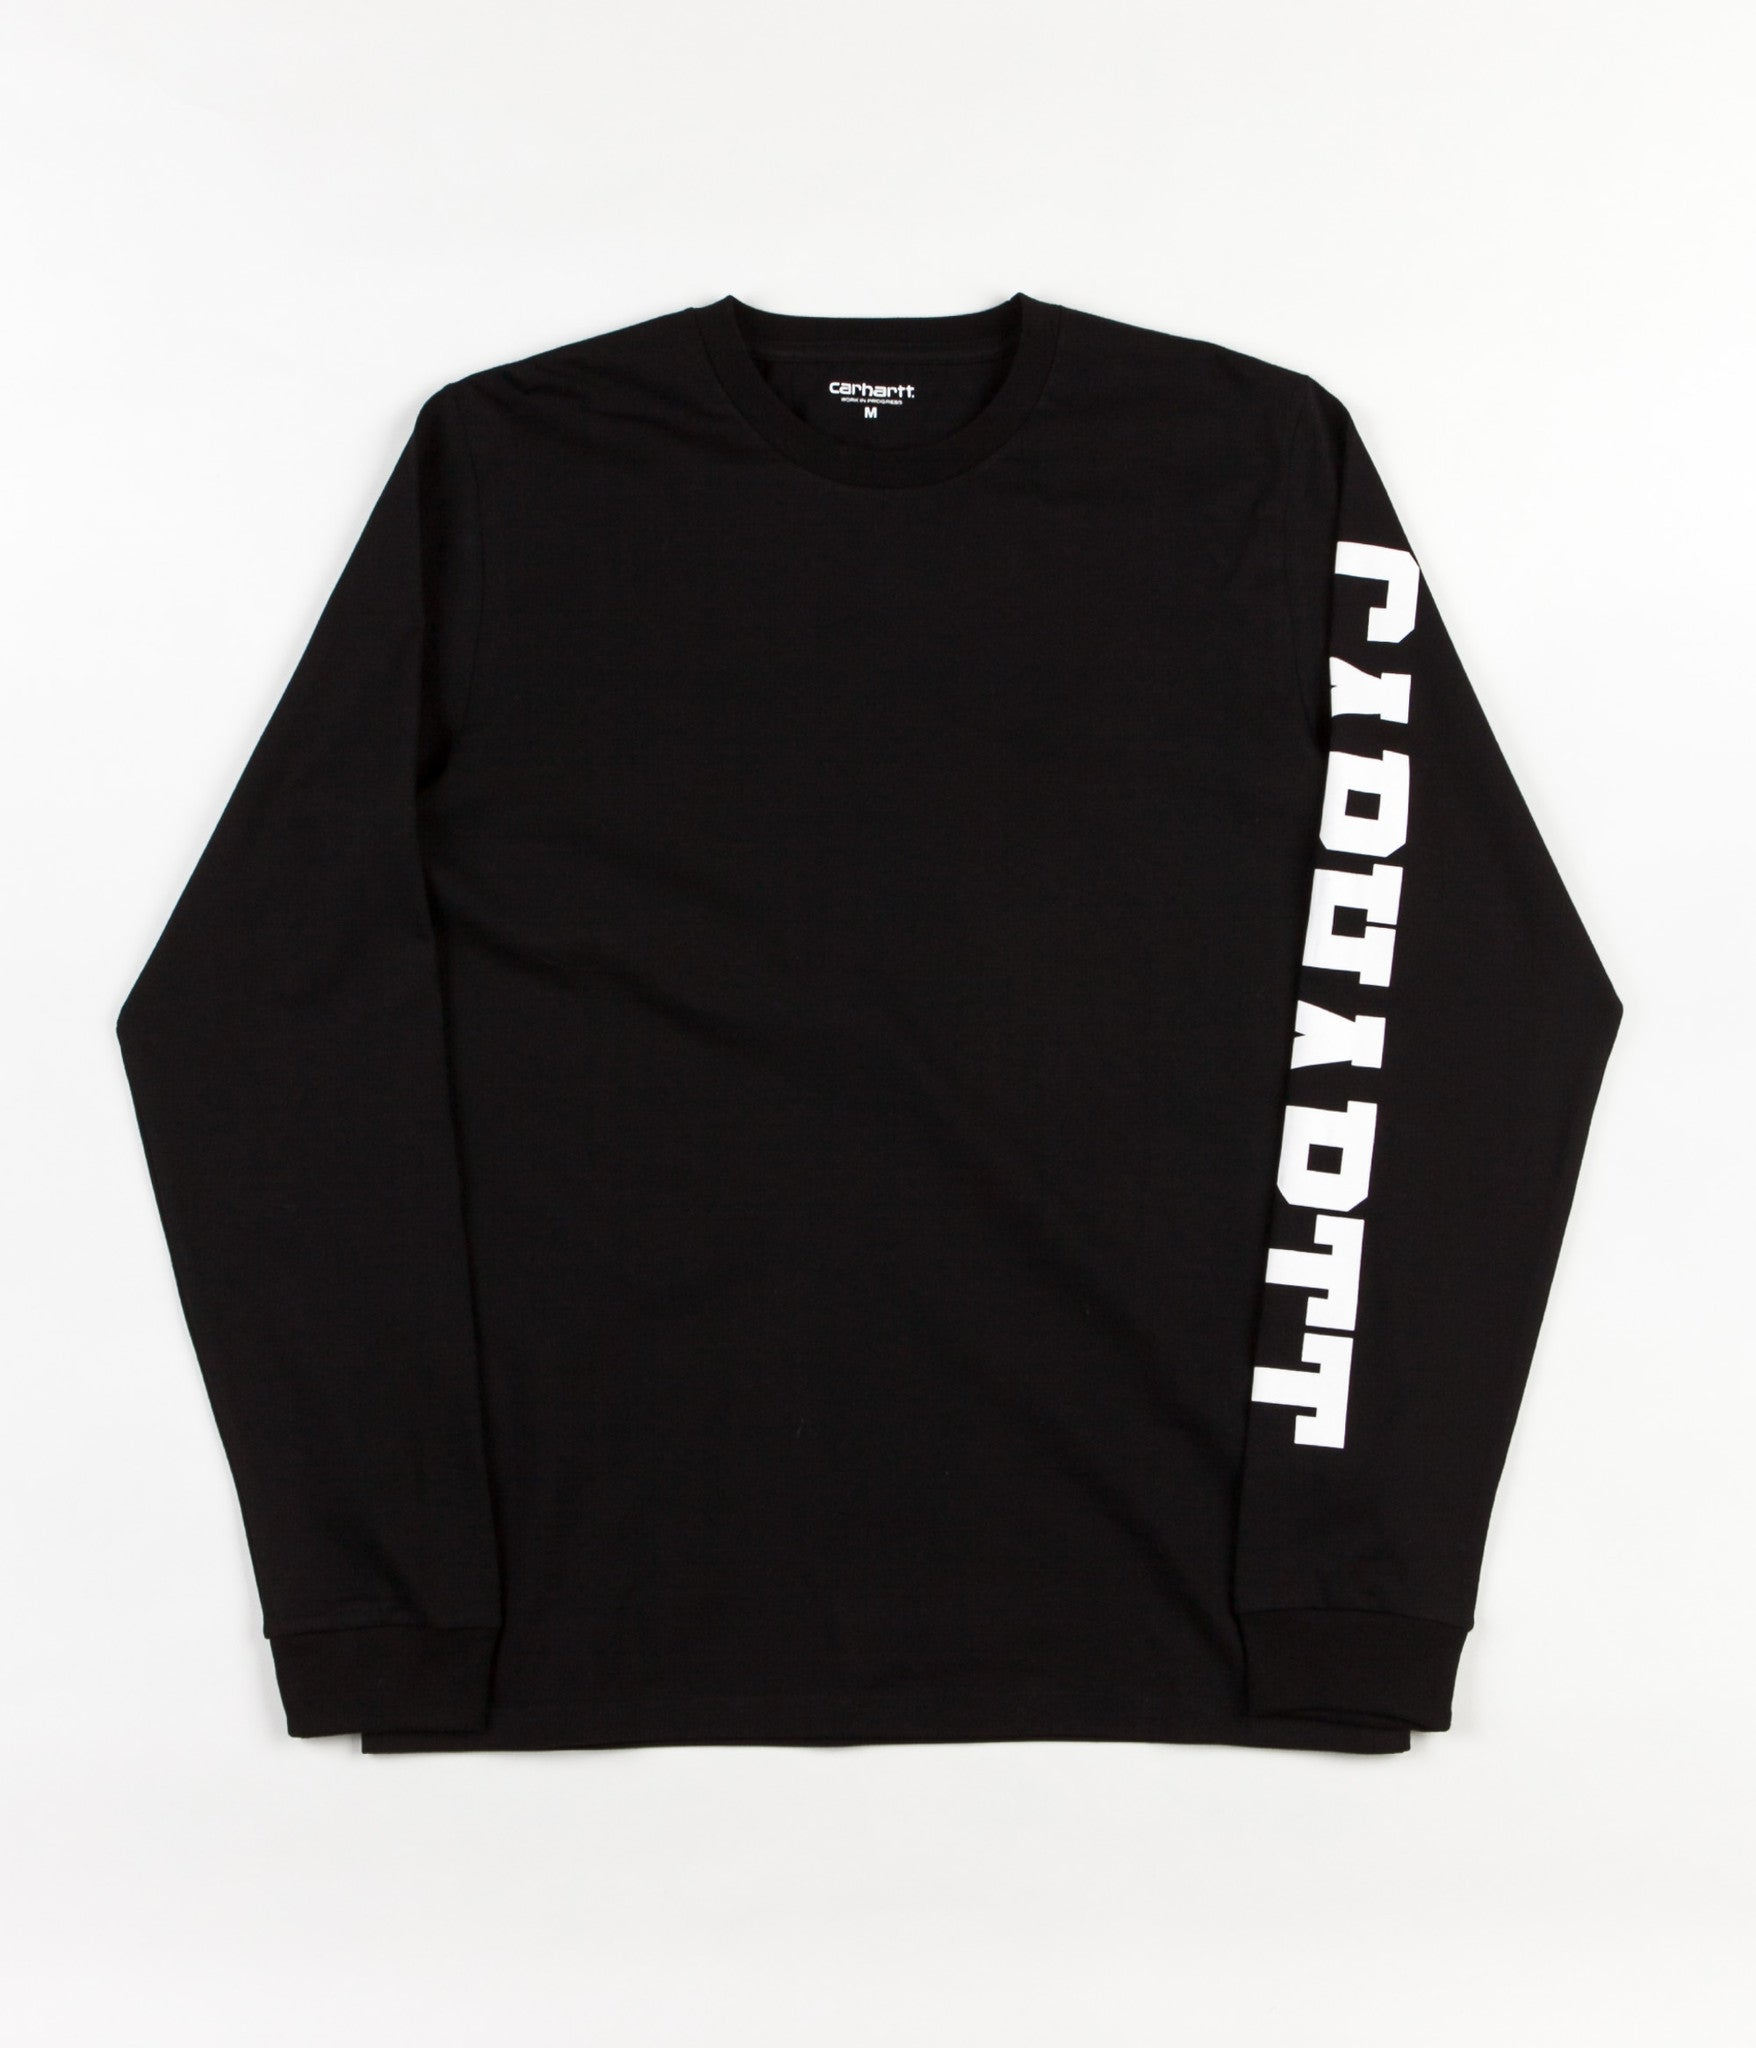 Carhartt College Left Long Sleeve T-Shirt - Black / White